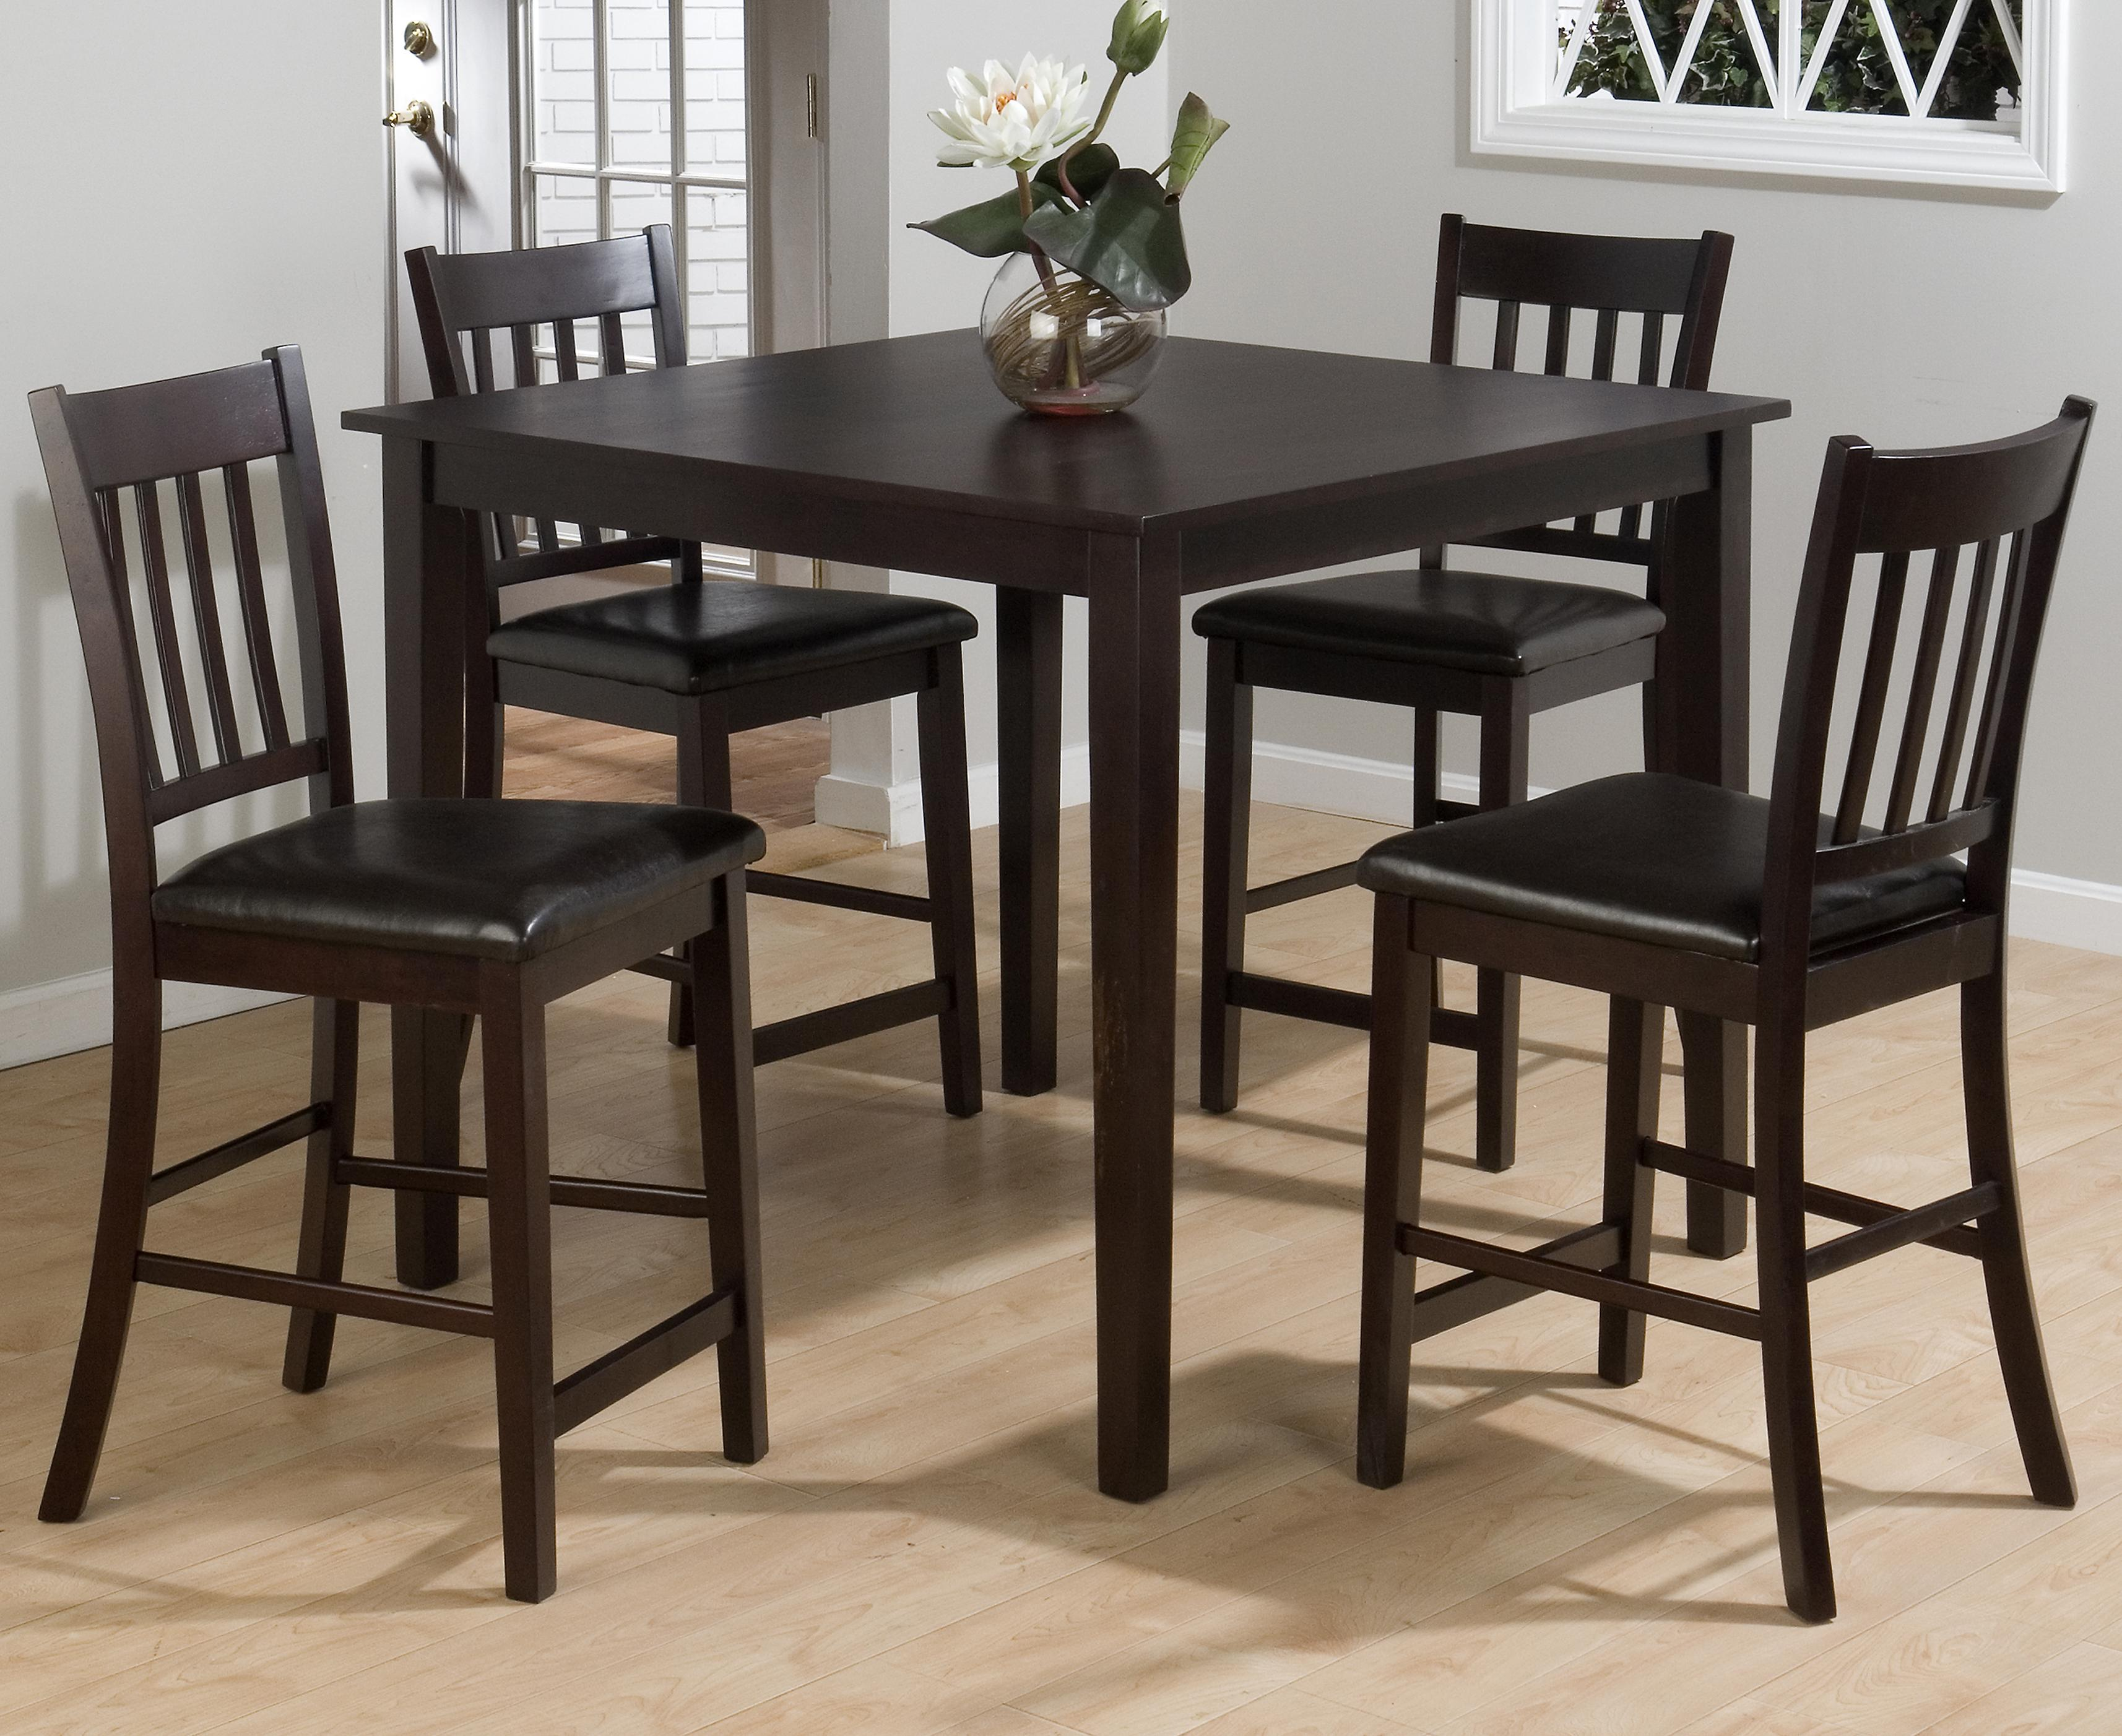 Marin County Merlot 5-Piece Pub Table Set by VFM Signature at Virginia Furniture Market